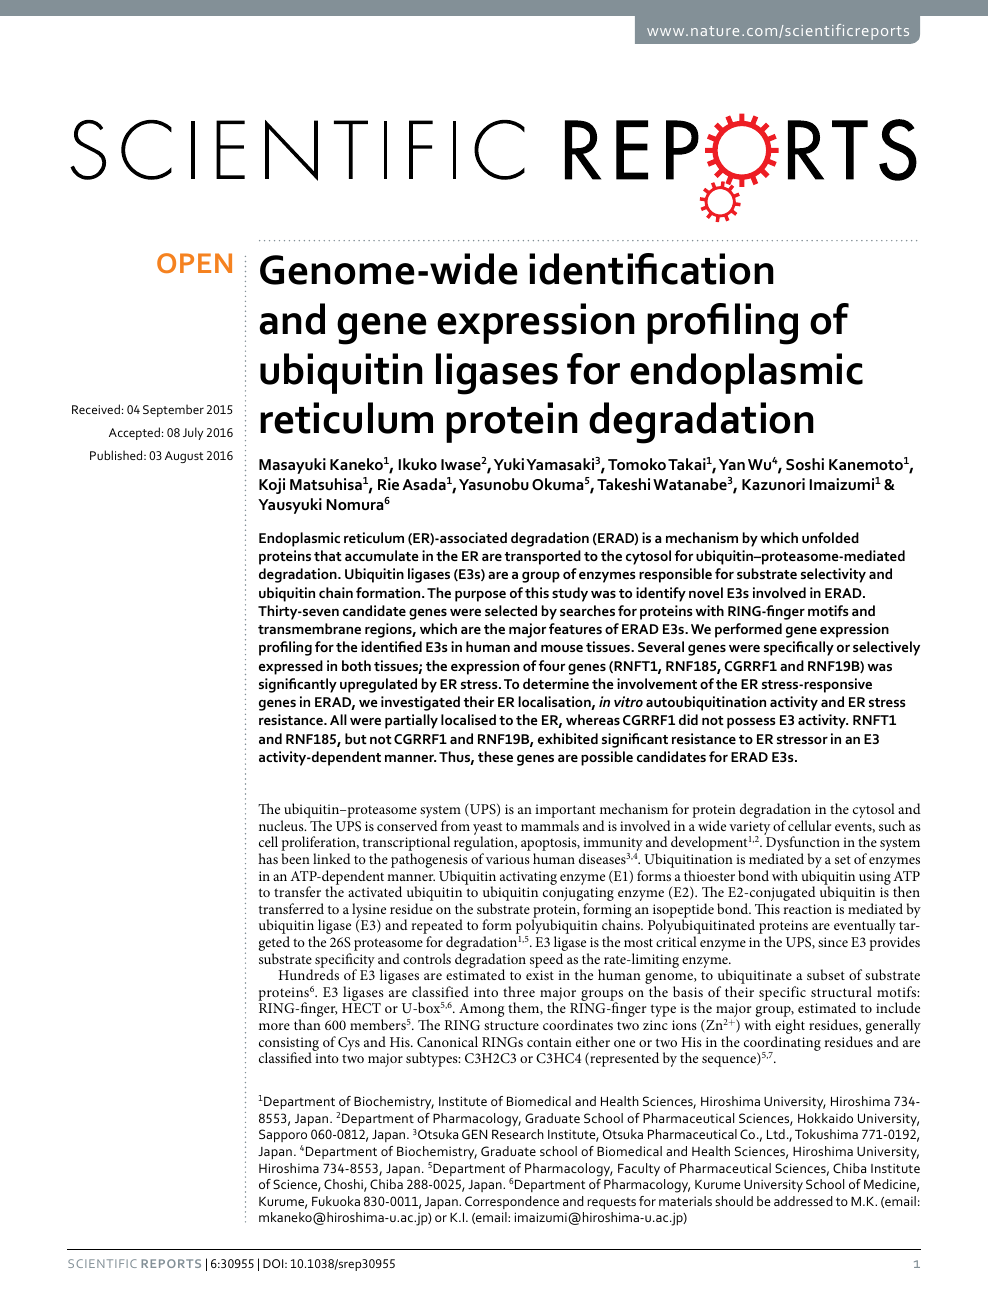 Genome-wide identification and gene expression profiling of